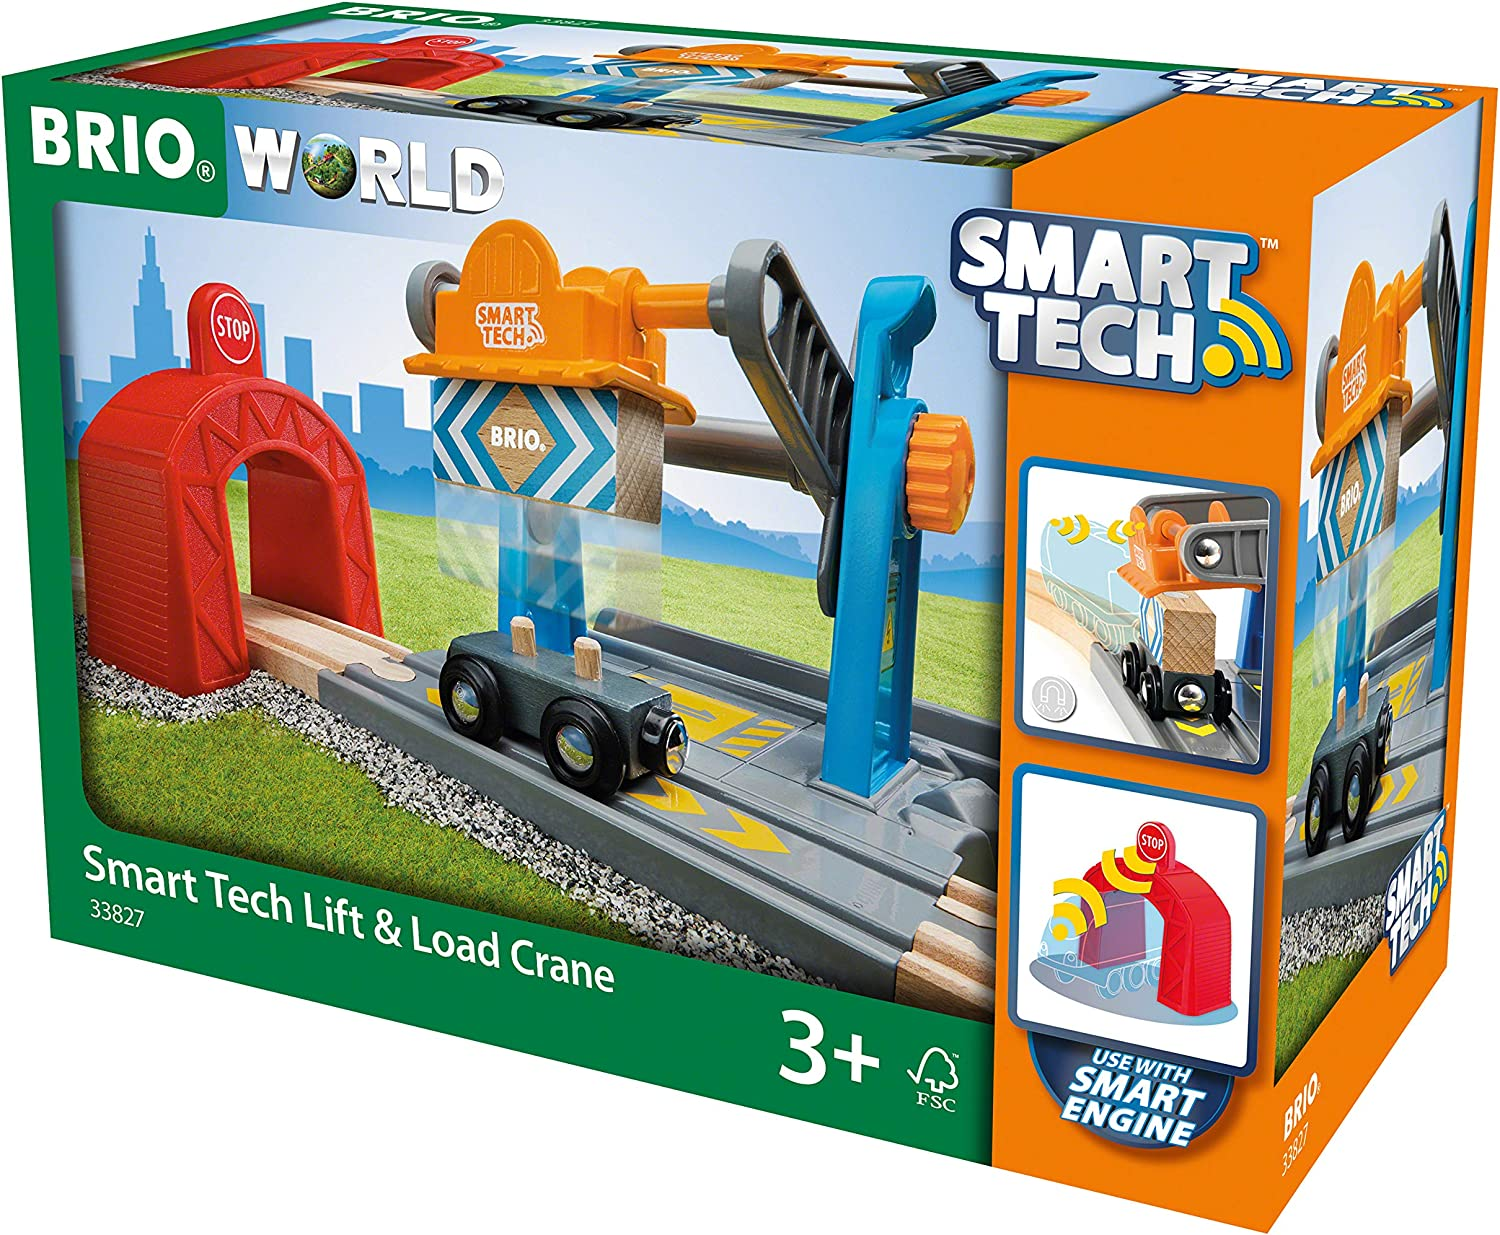 Brio 33827 World-Smart Tech Railway-Harbor Crane